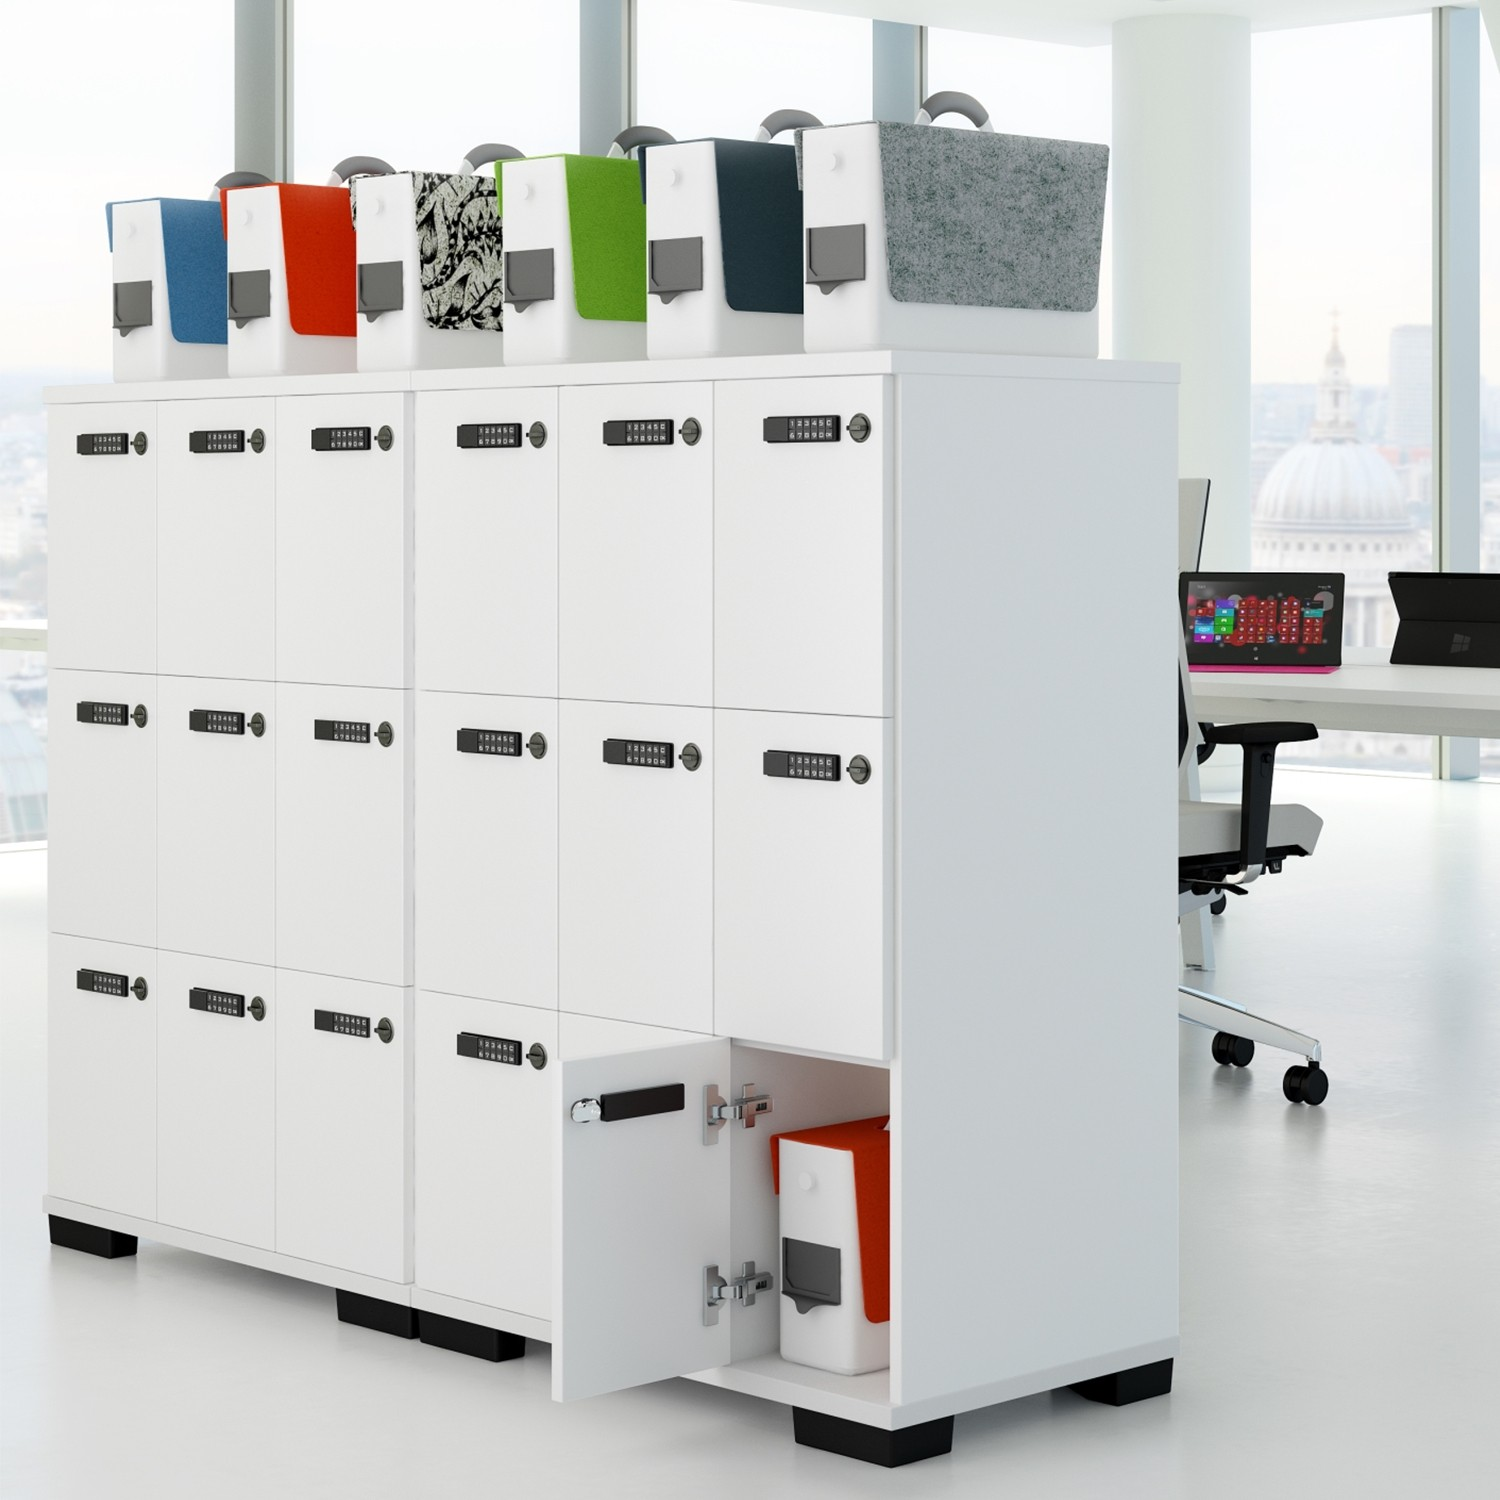 Personal Storage In The Shape Of Elite Lockers And The